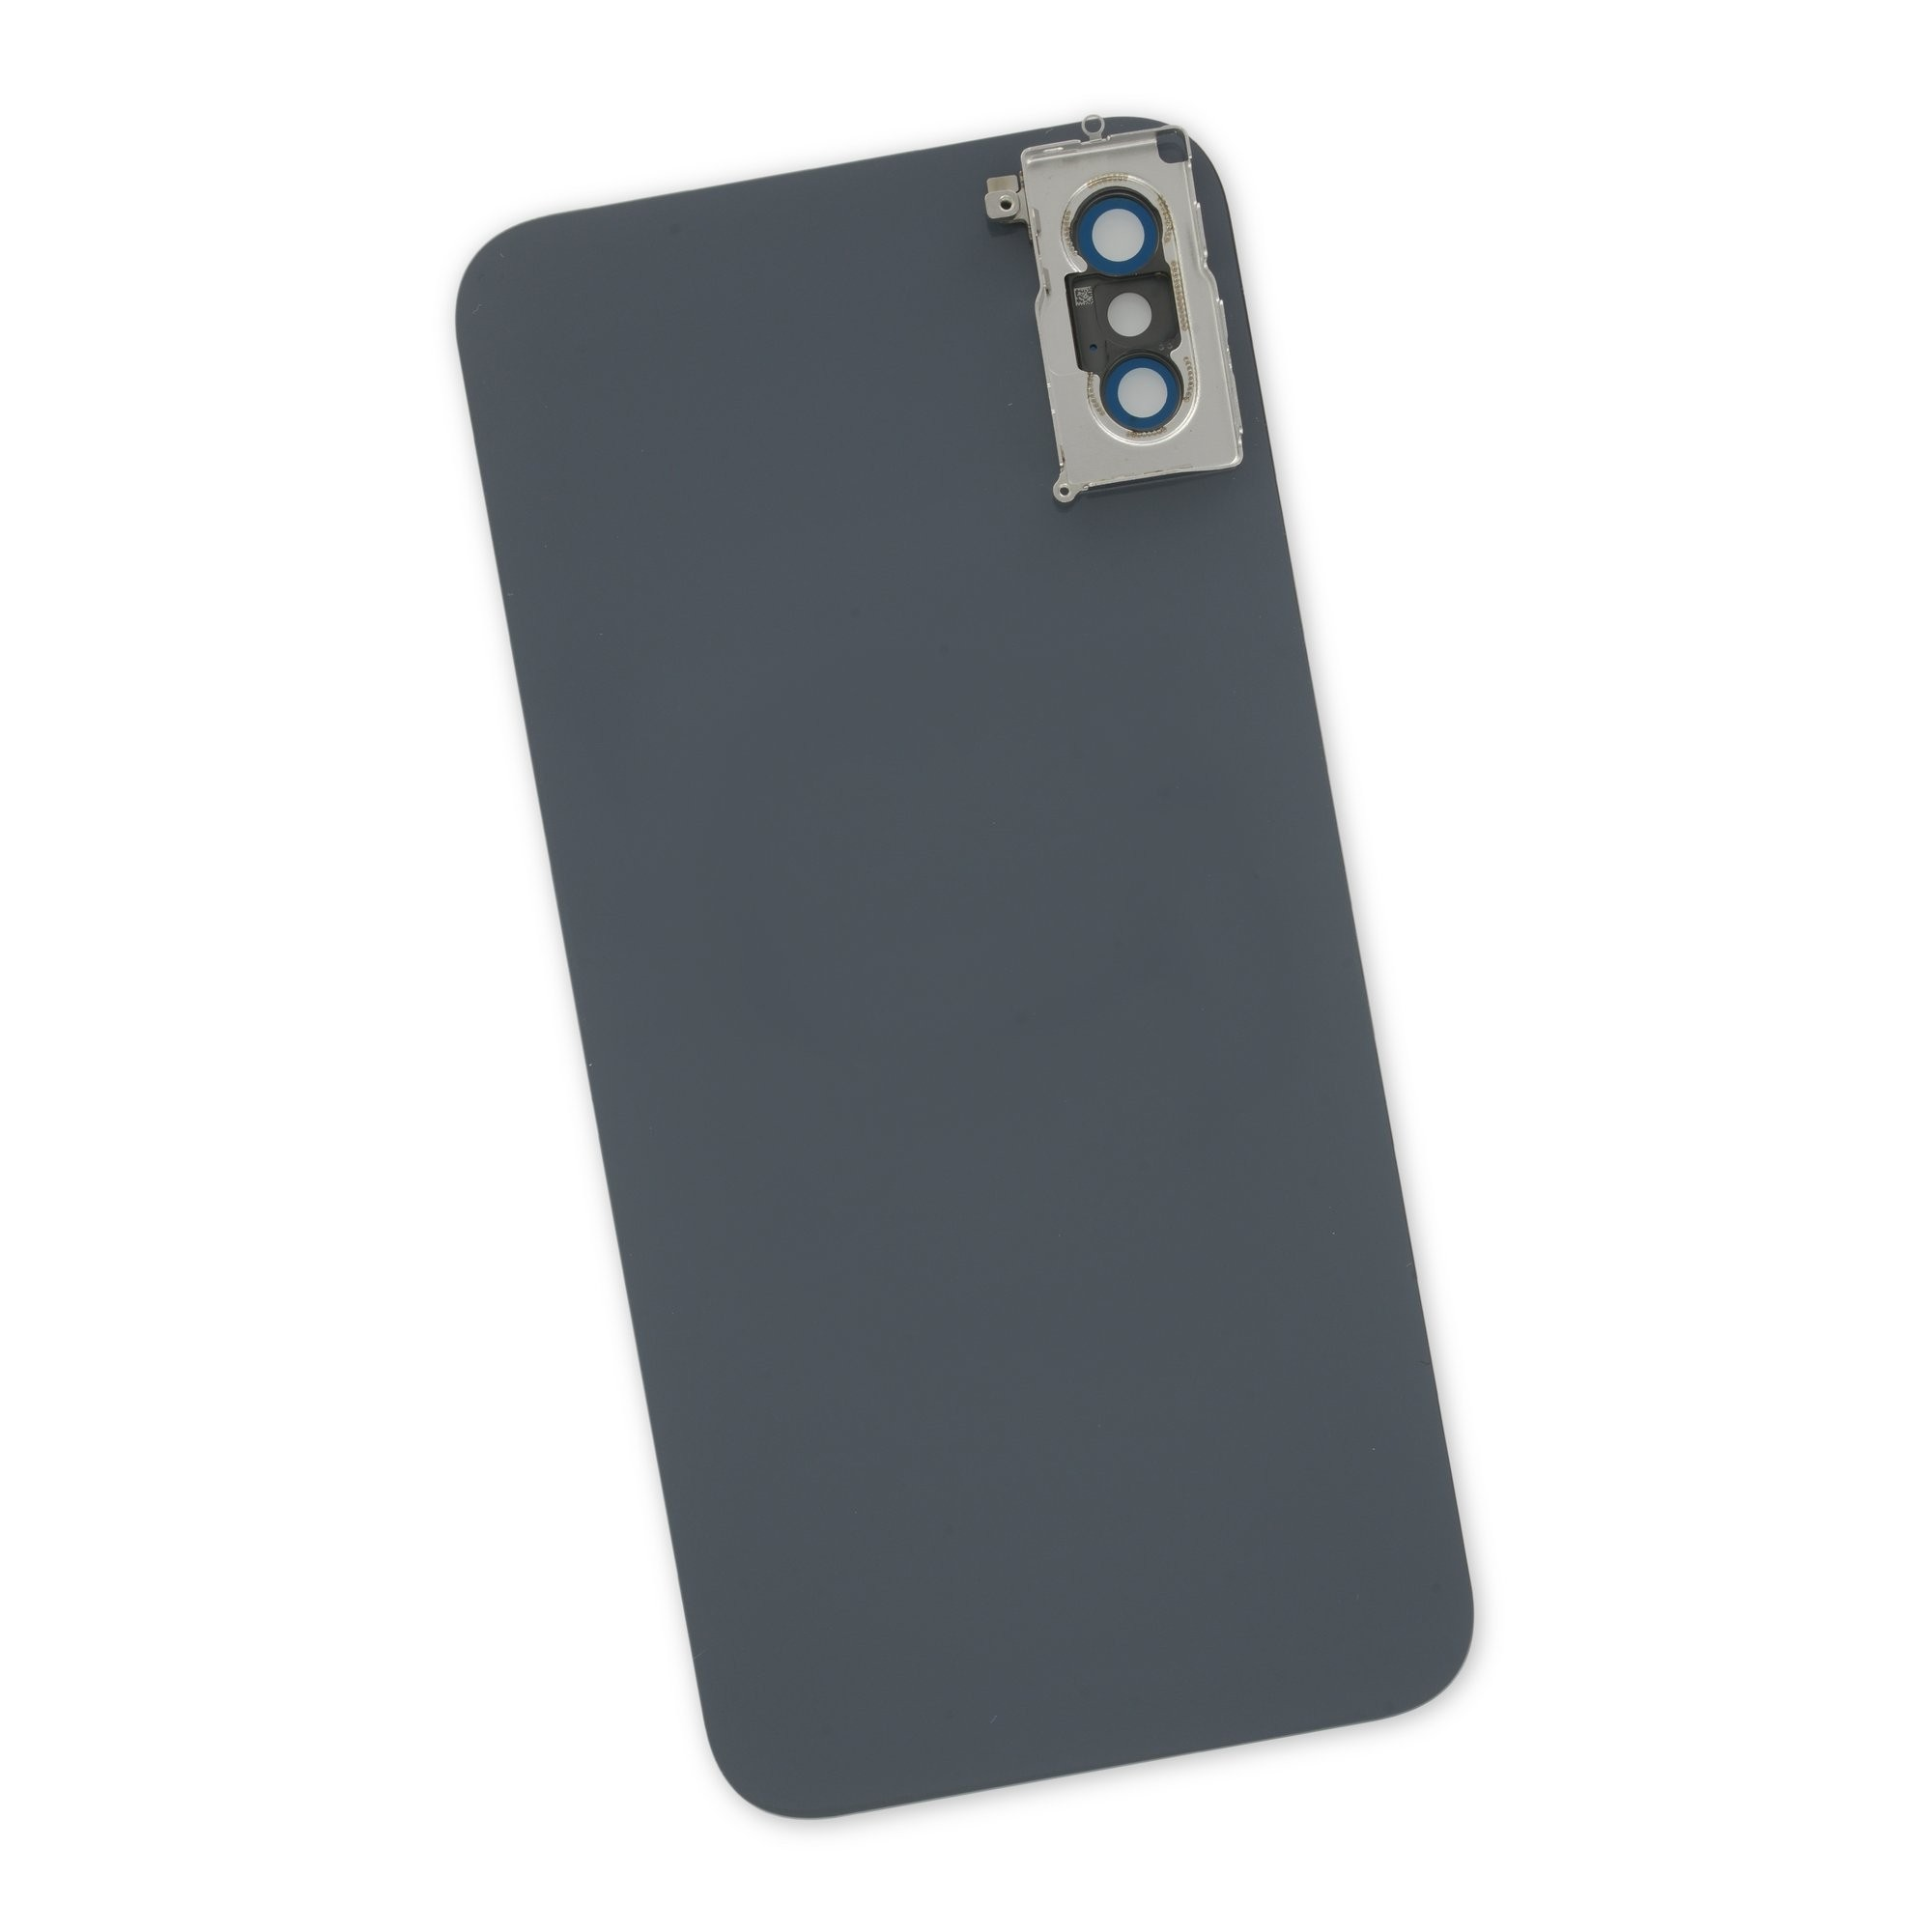 iPhone XS Aftermarket Blank Rear Glass Panel with Lens Cover - Black, IF406-016-1